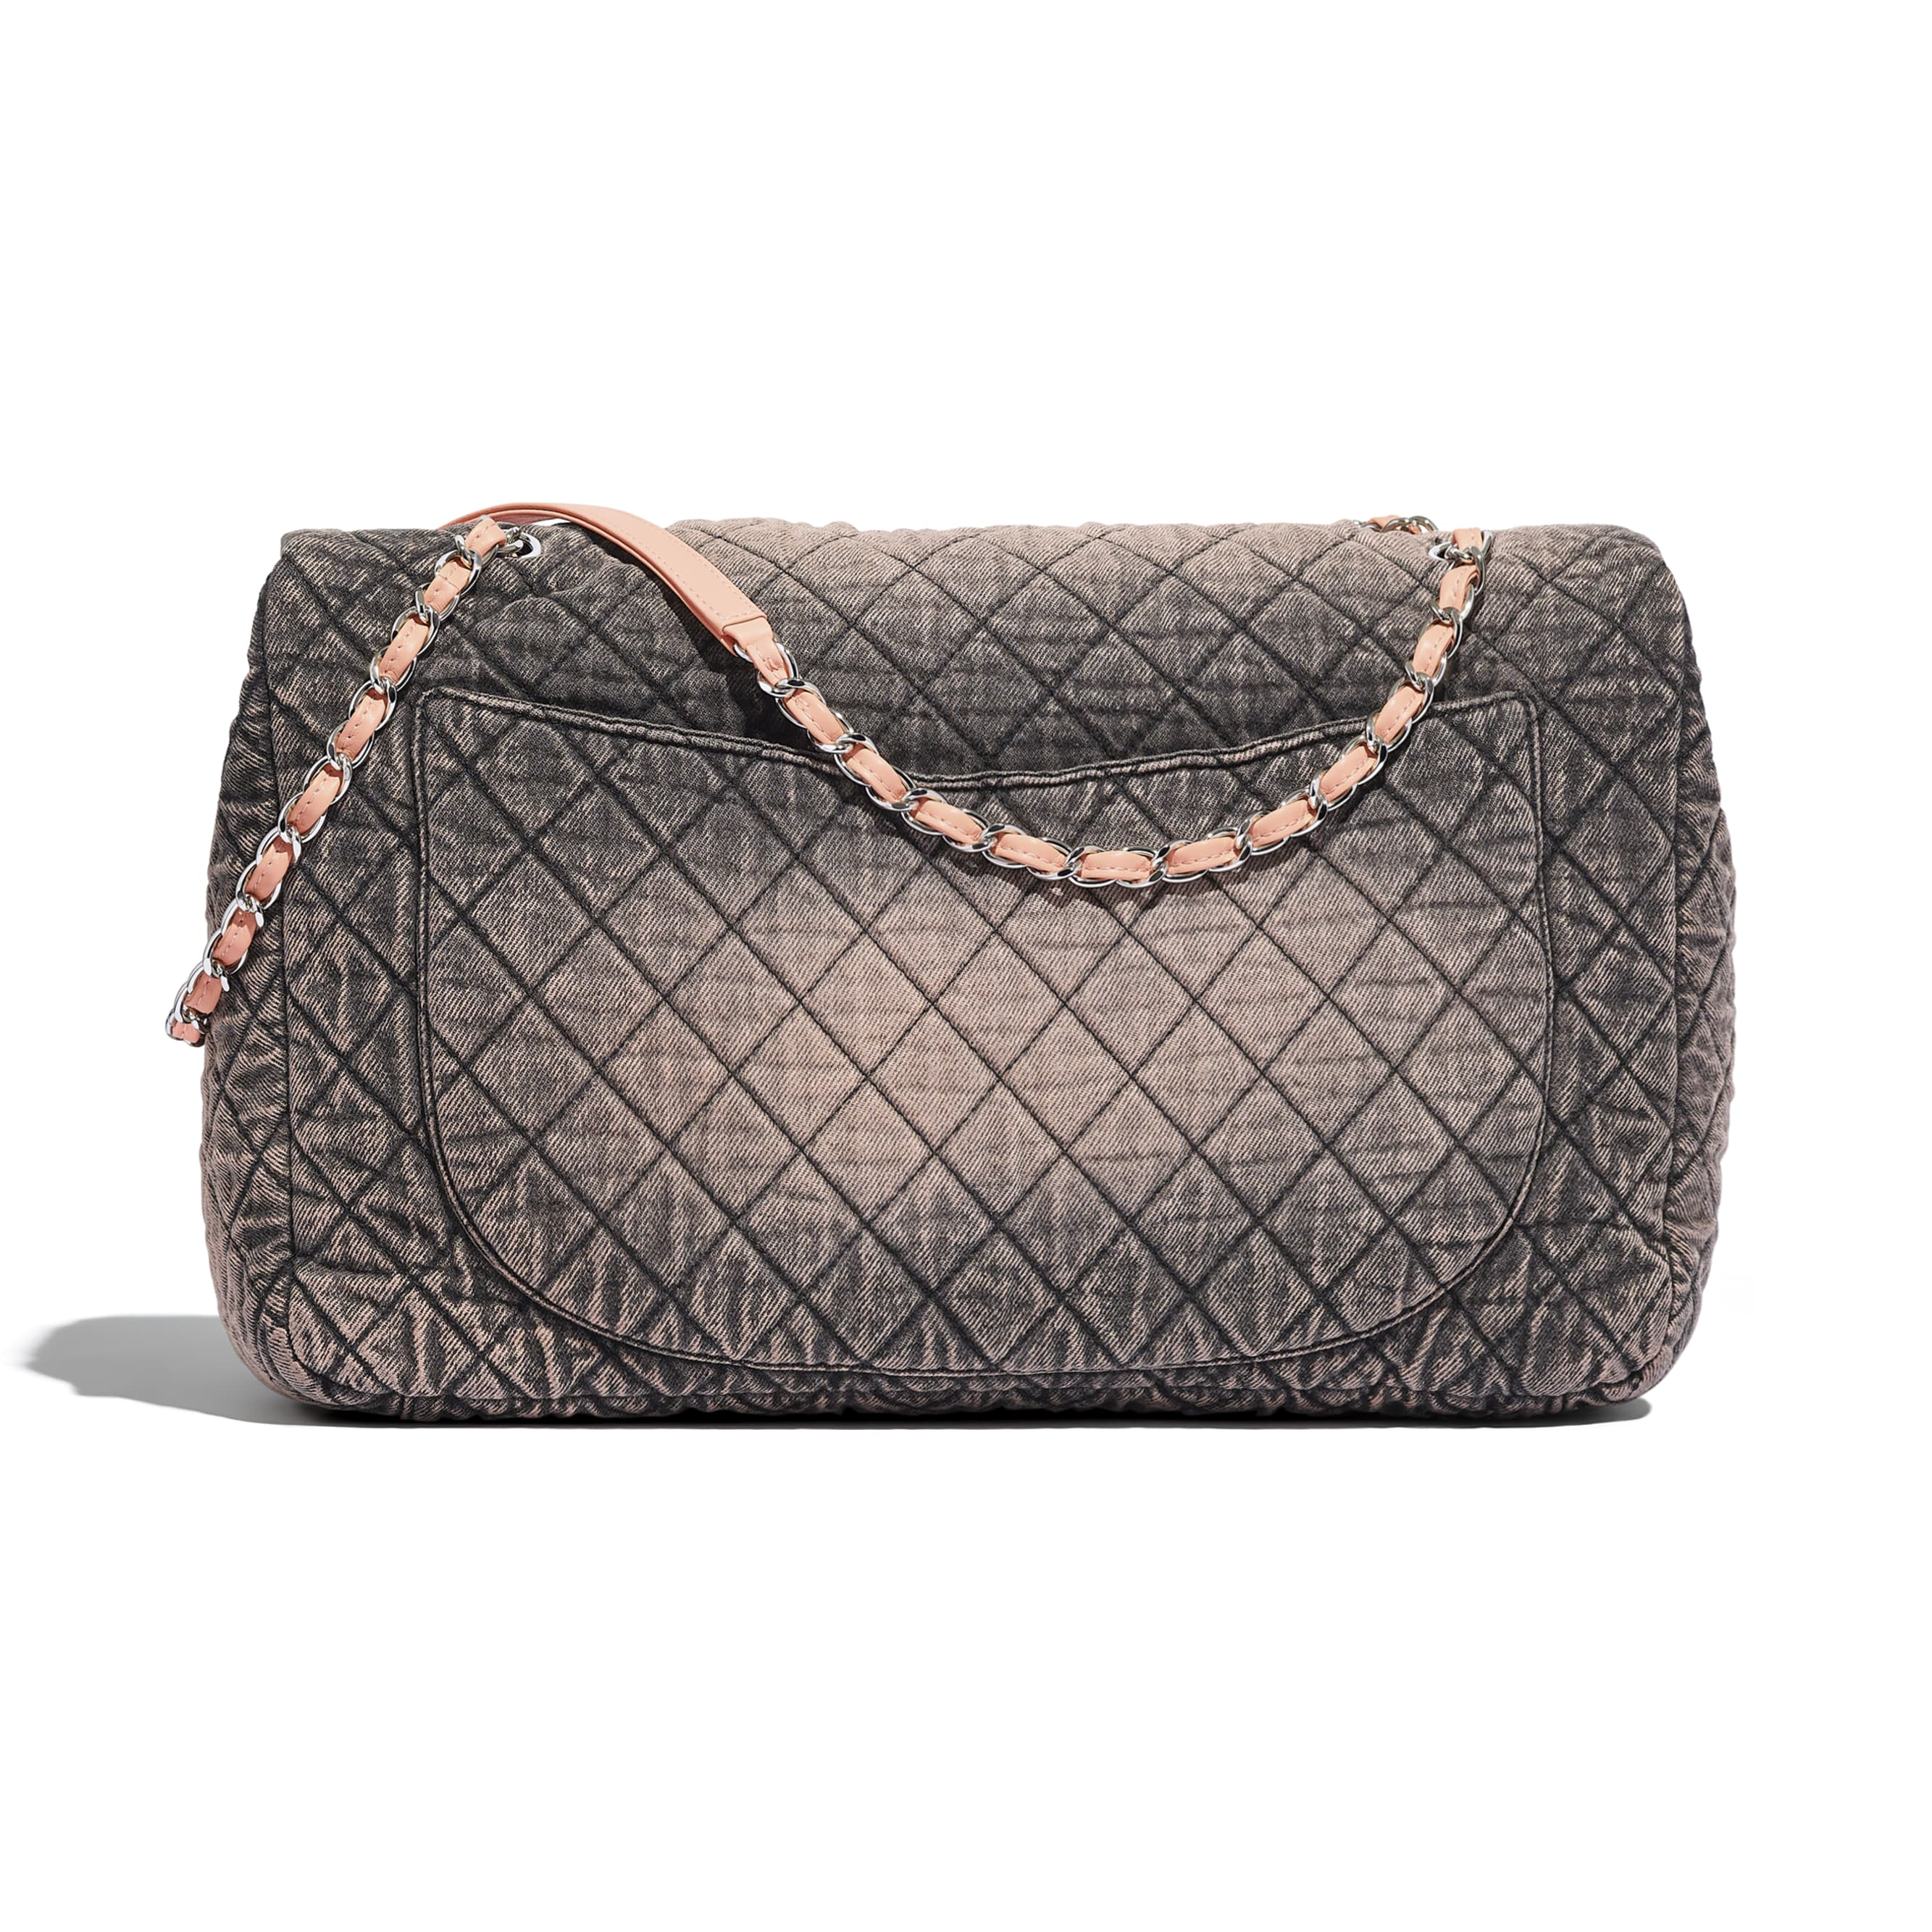 Large Flap Bag - Light Pink & Black - Denim & Silver-Tone Metal - CHANEL - Alternative view - see standard sized version